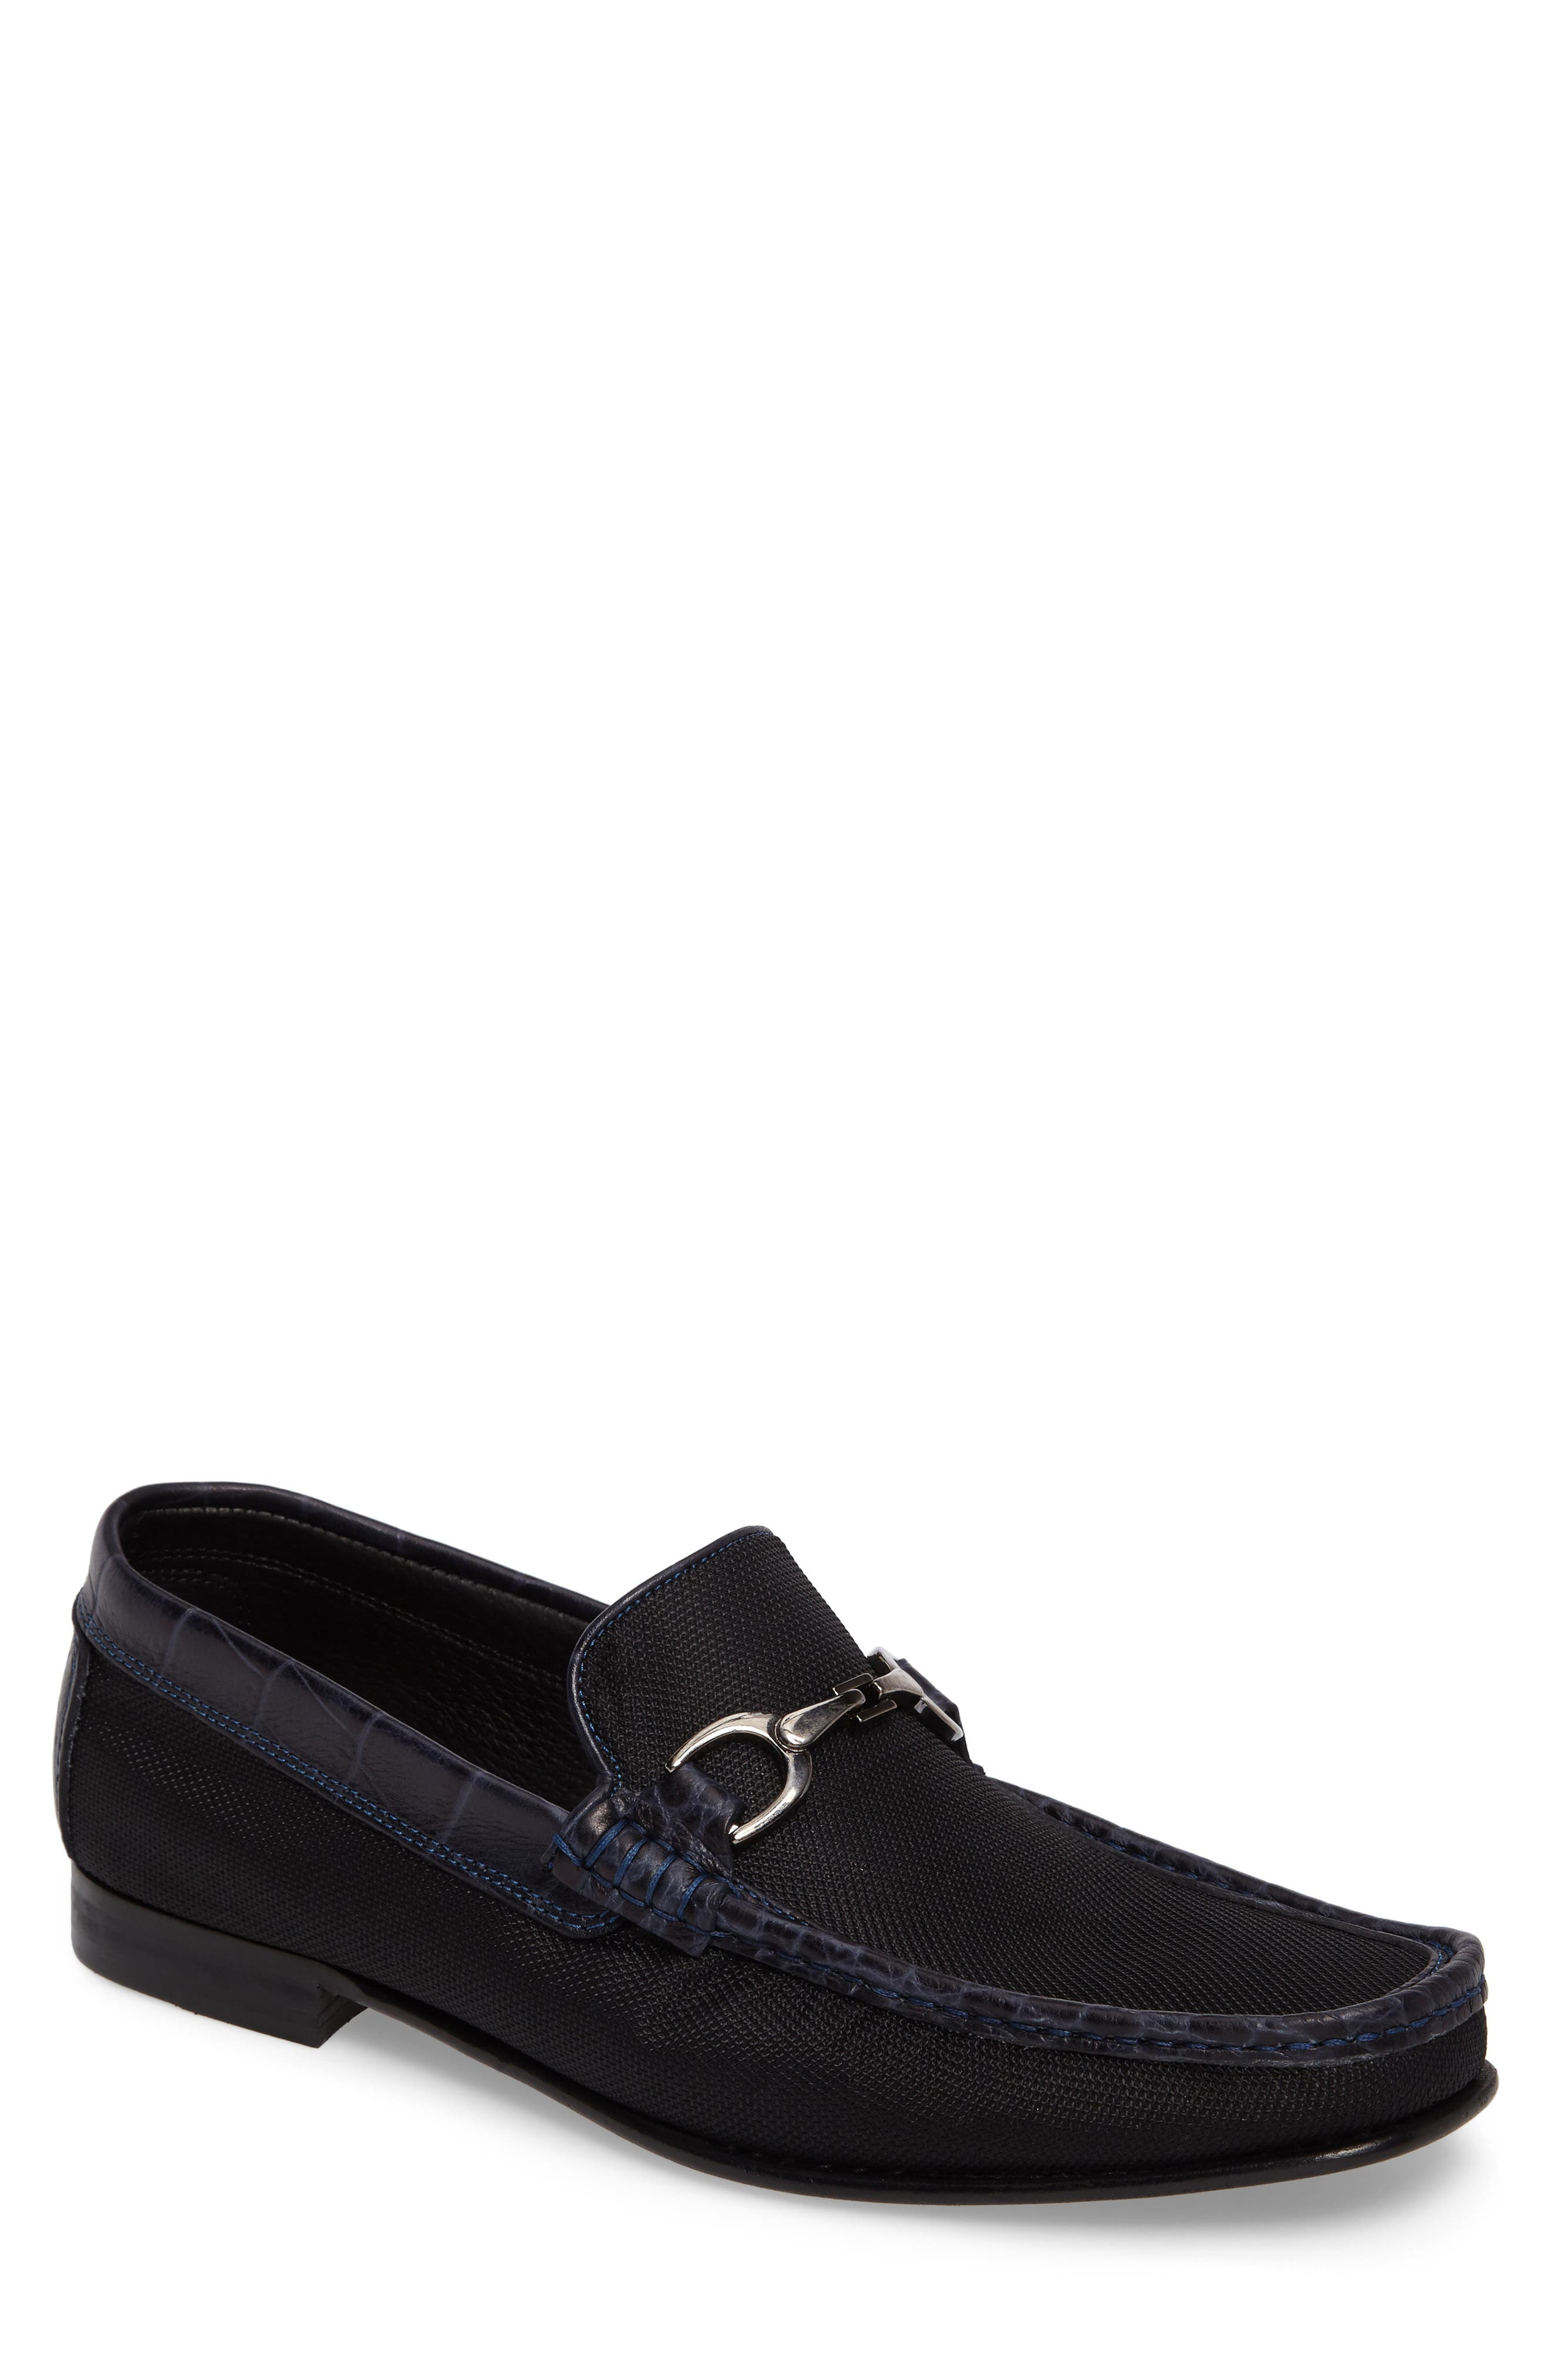 Darrin Embossed Loafer,                         Main,                         color, 001